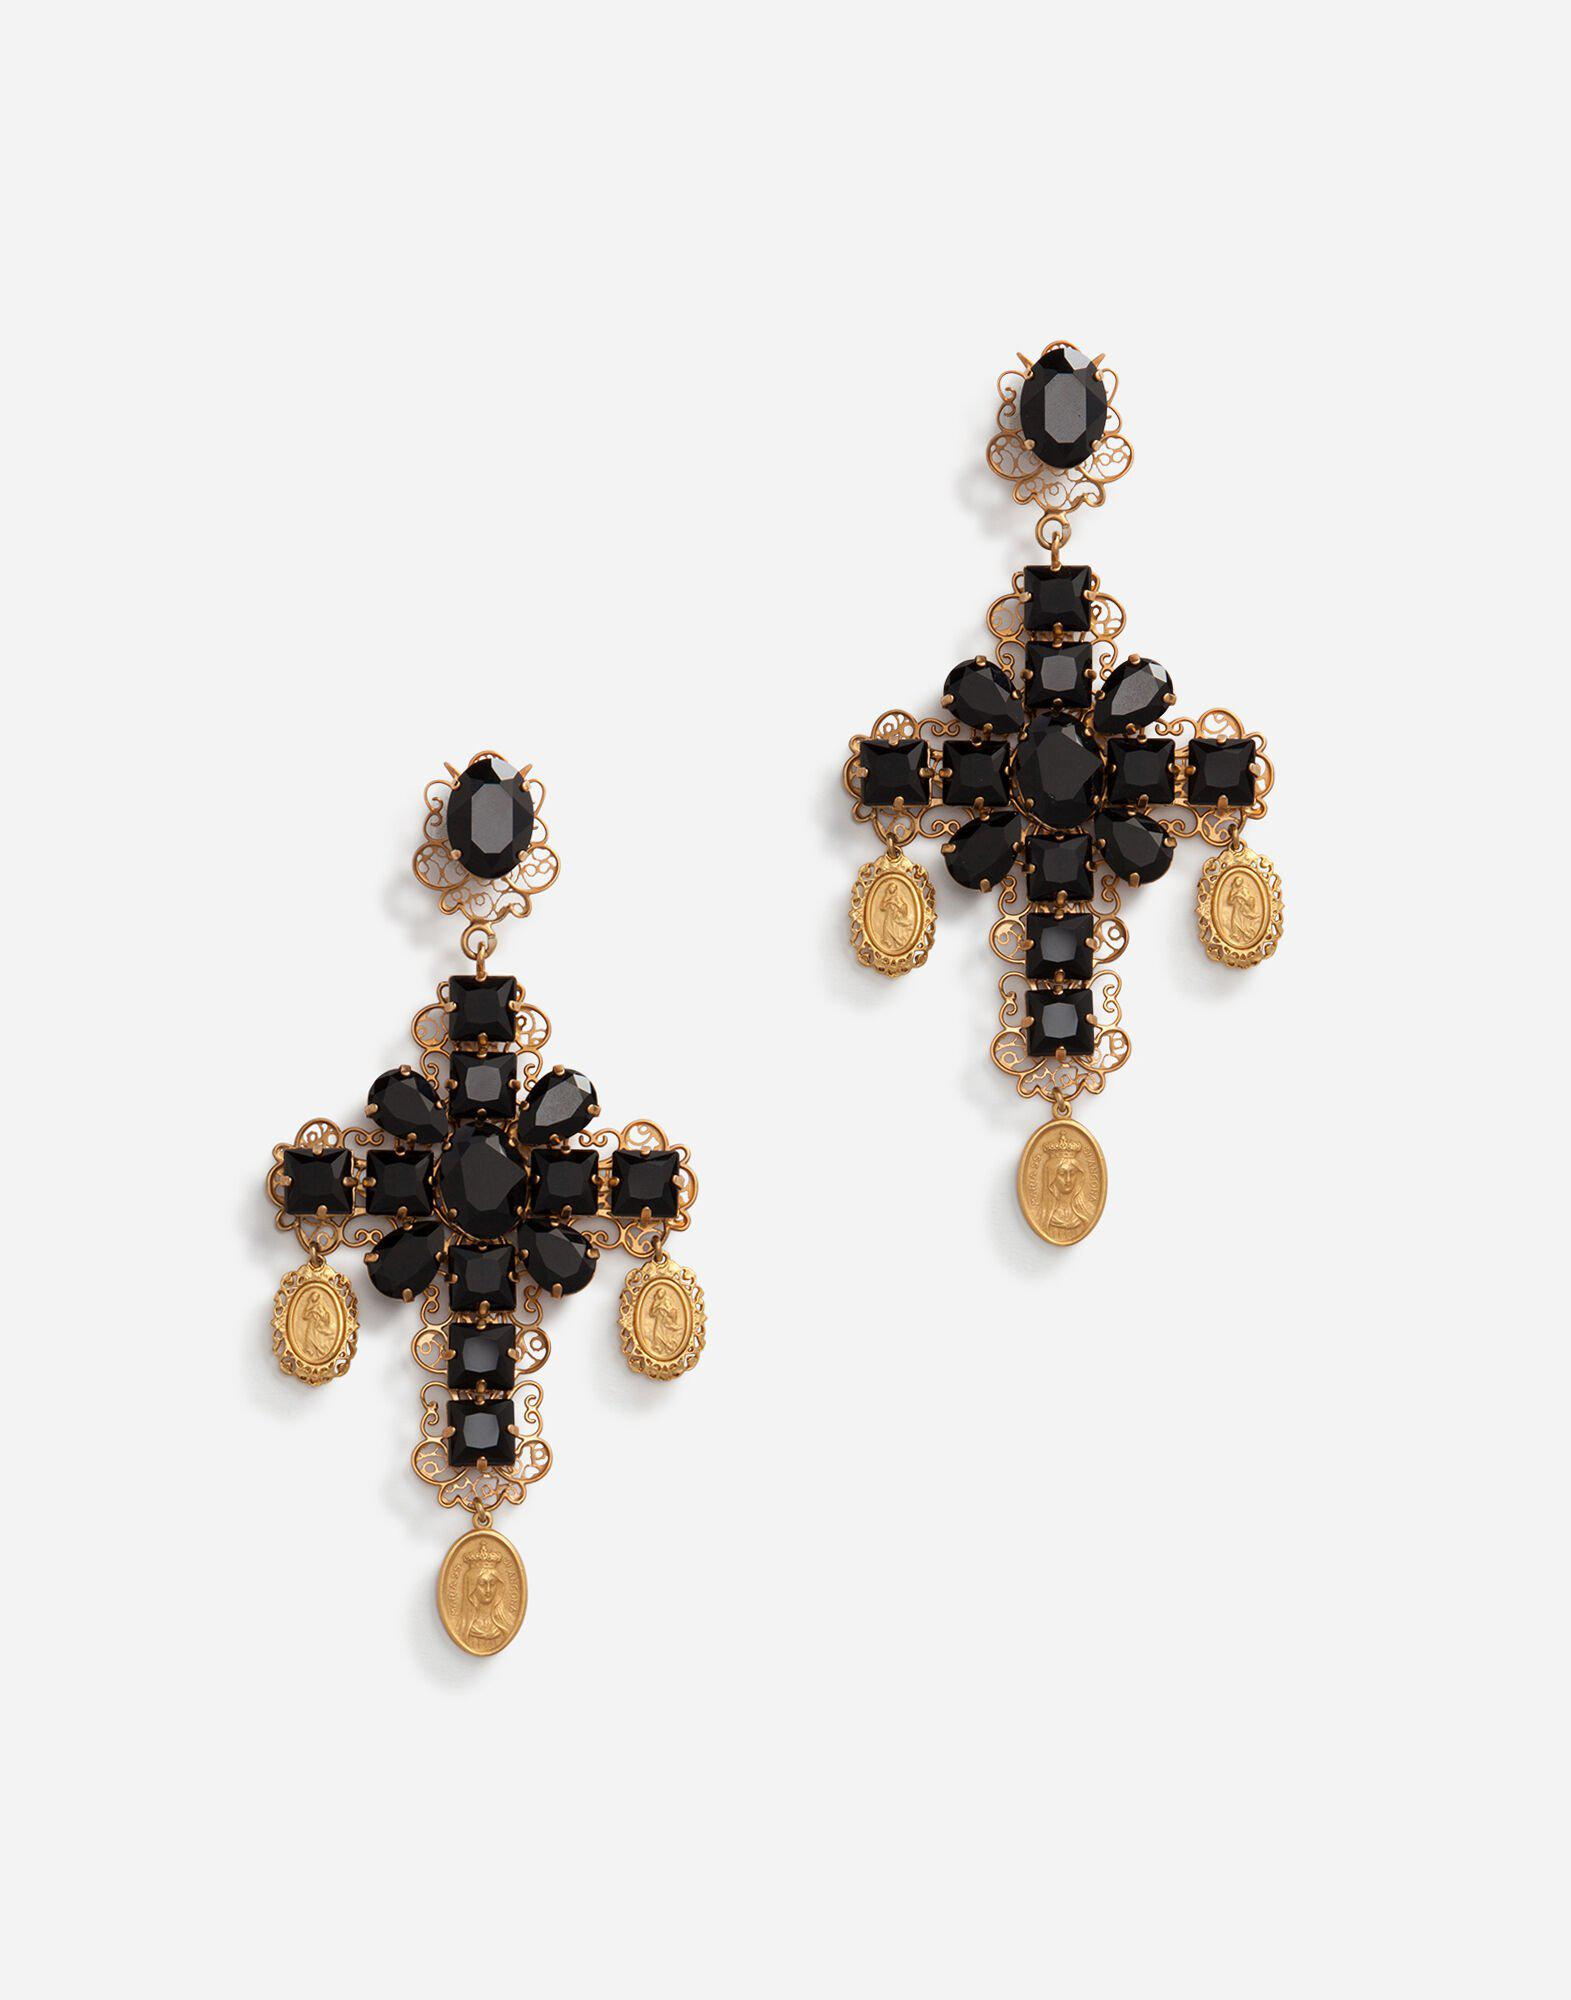 Clip-on drop earrings with crosses and medallions